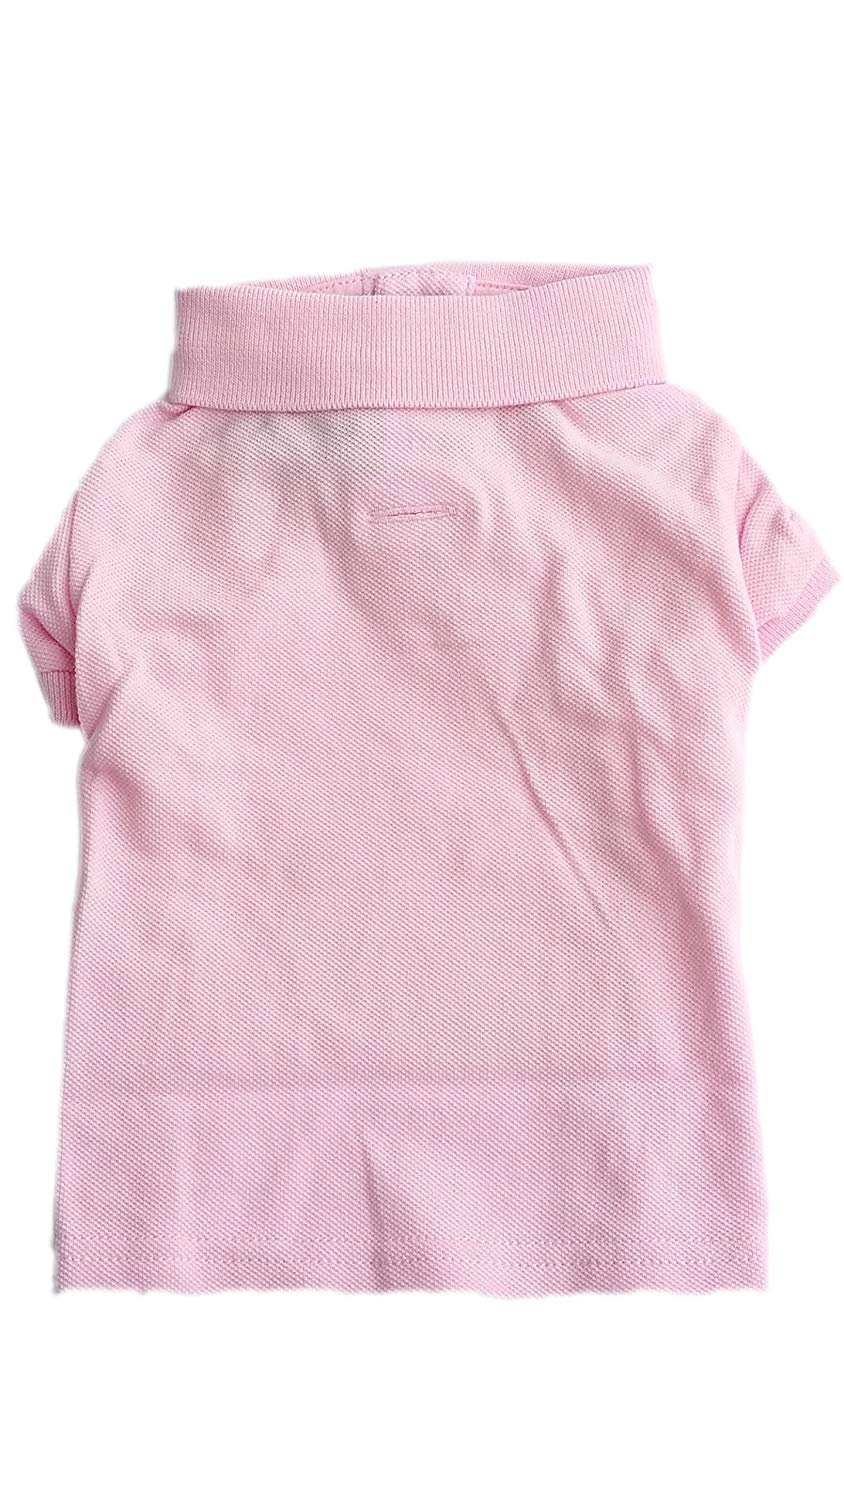 9e39cf303 Amazon.com   Ralph Lauren Dog Puppy Pet Polo Shirt Designer Clothing Blue  Pink Size S M L £45 (Small   Pet Supplies